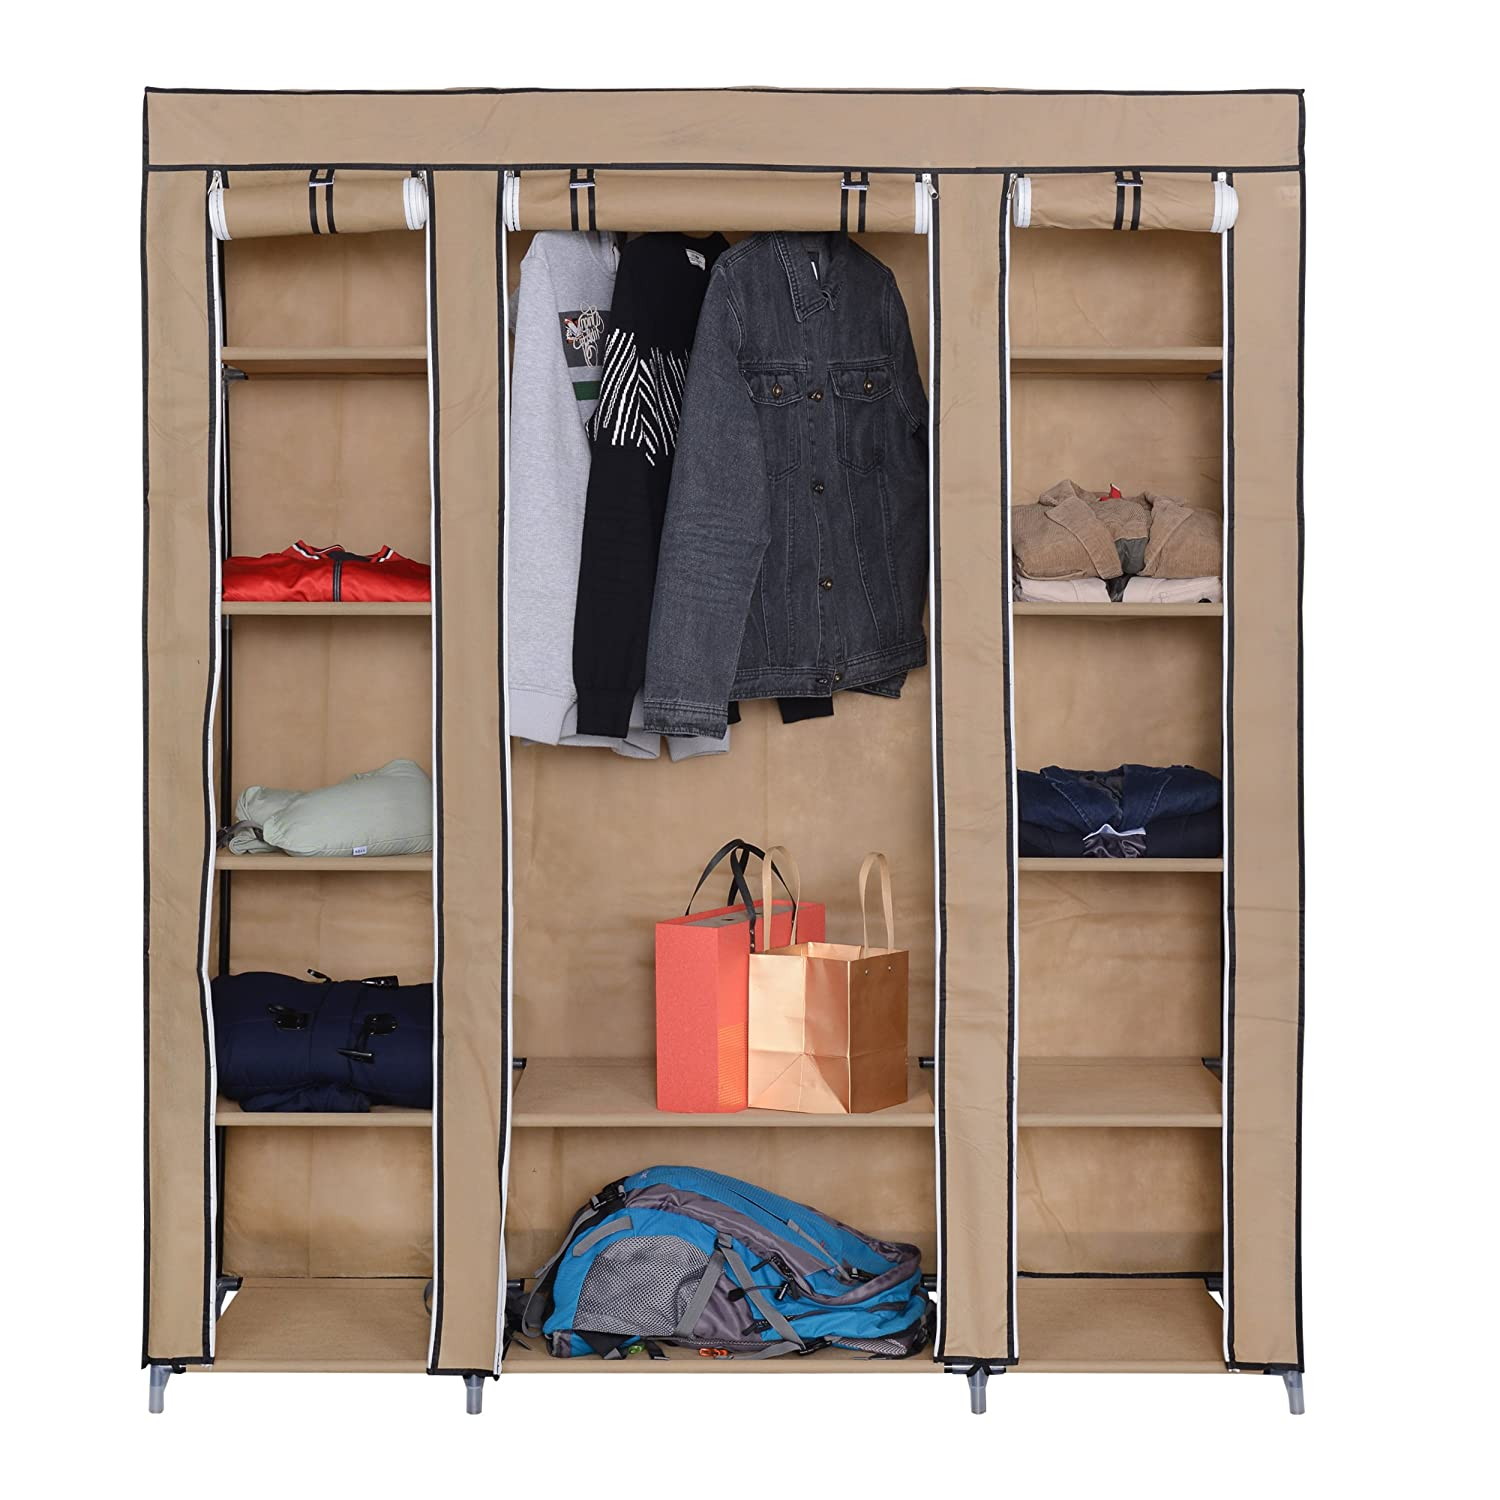 Mari Home - Roston Beige Triple Canvas Wardrobe, Metal Framed Bedroom Furniture Storage Organiser Foldable Lightweight Fabric Clothes Rack with 5 Coat Hangers